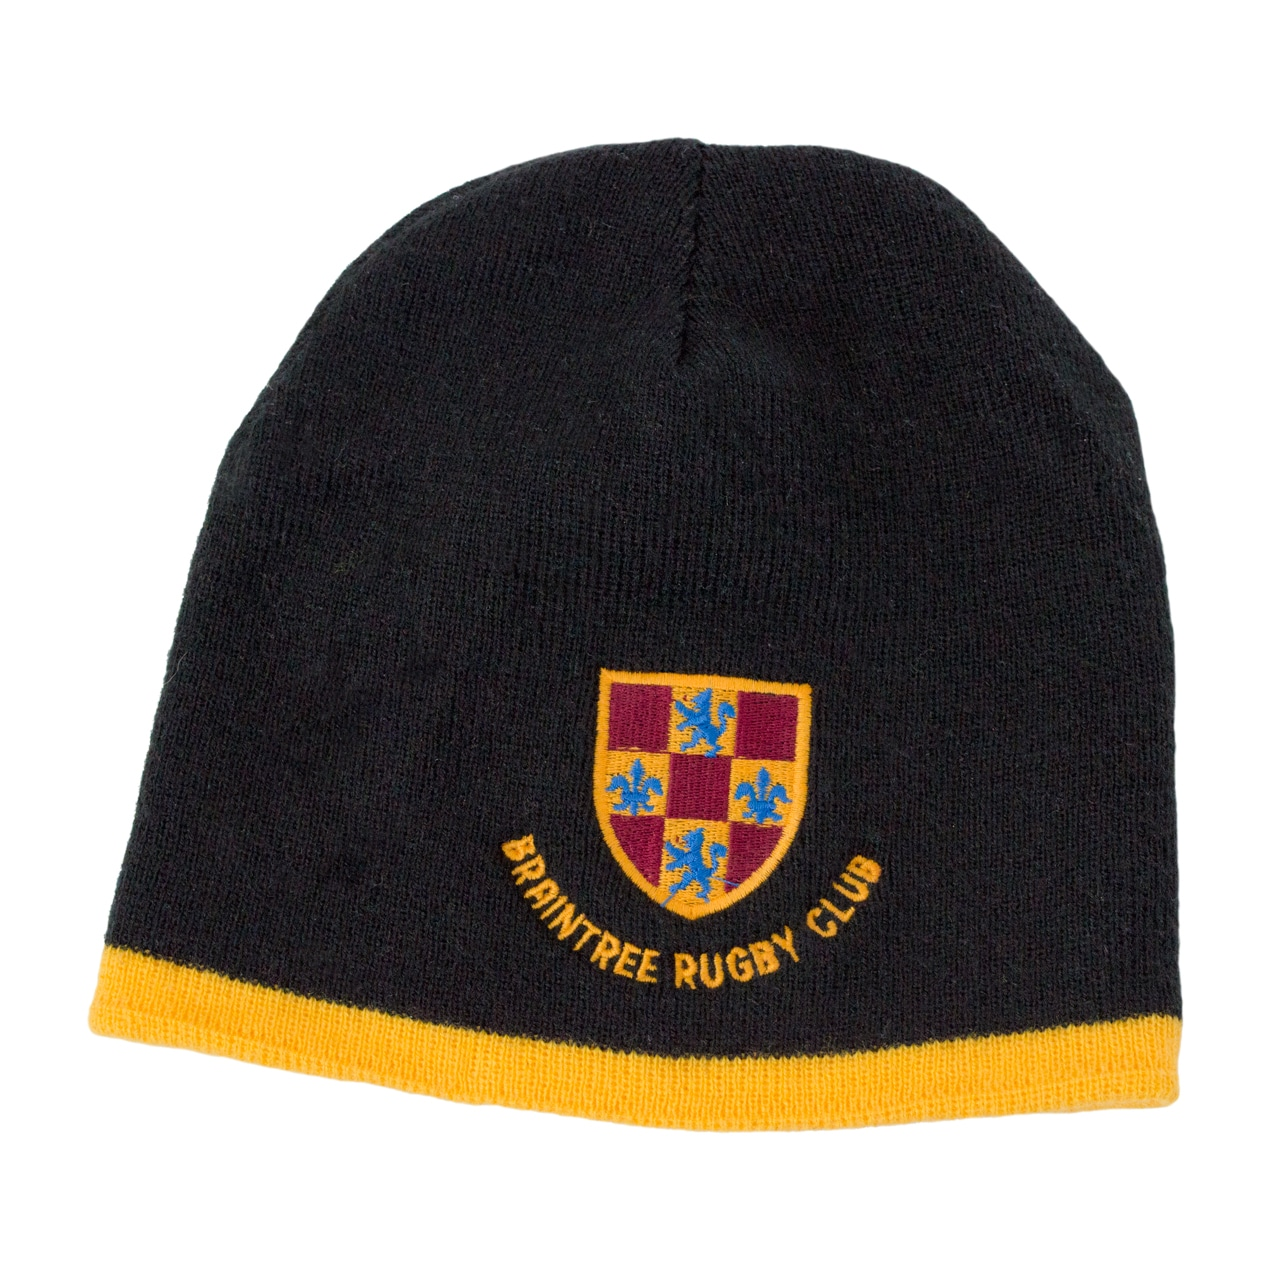 Embroidered Personalised Beanies from Jageto Embroidery and Print in Essex, UK